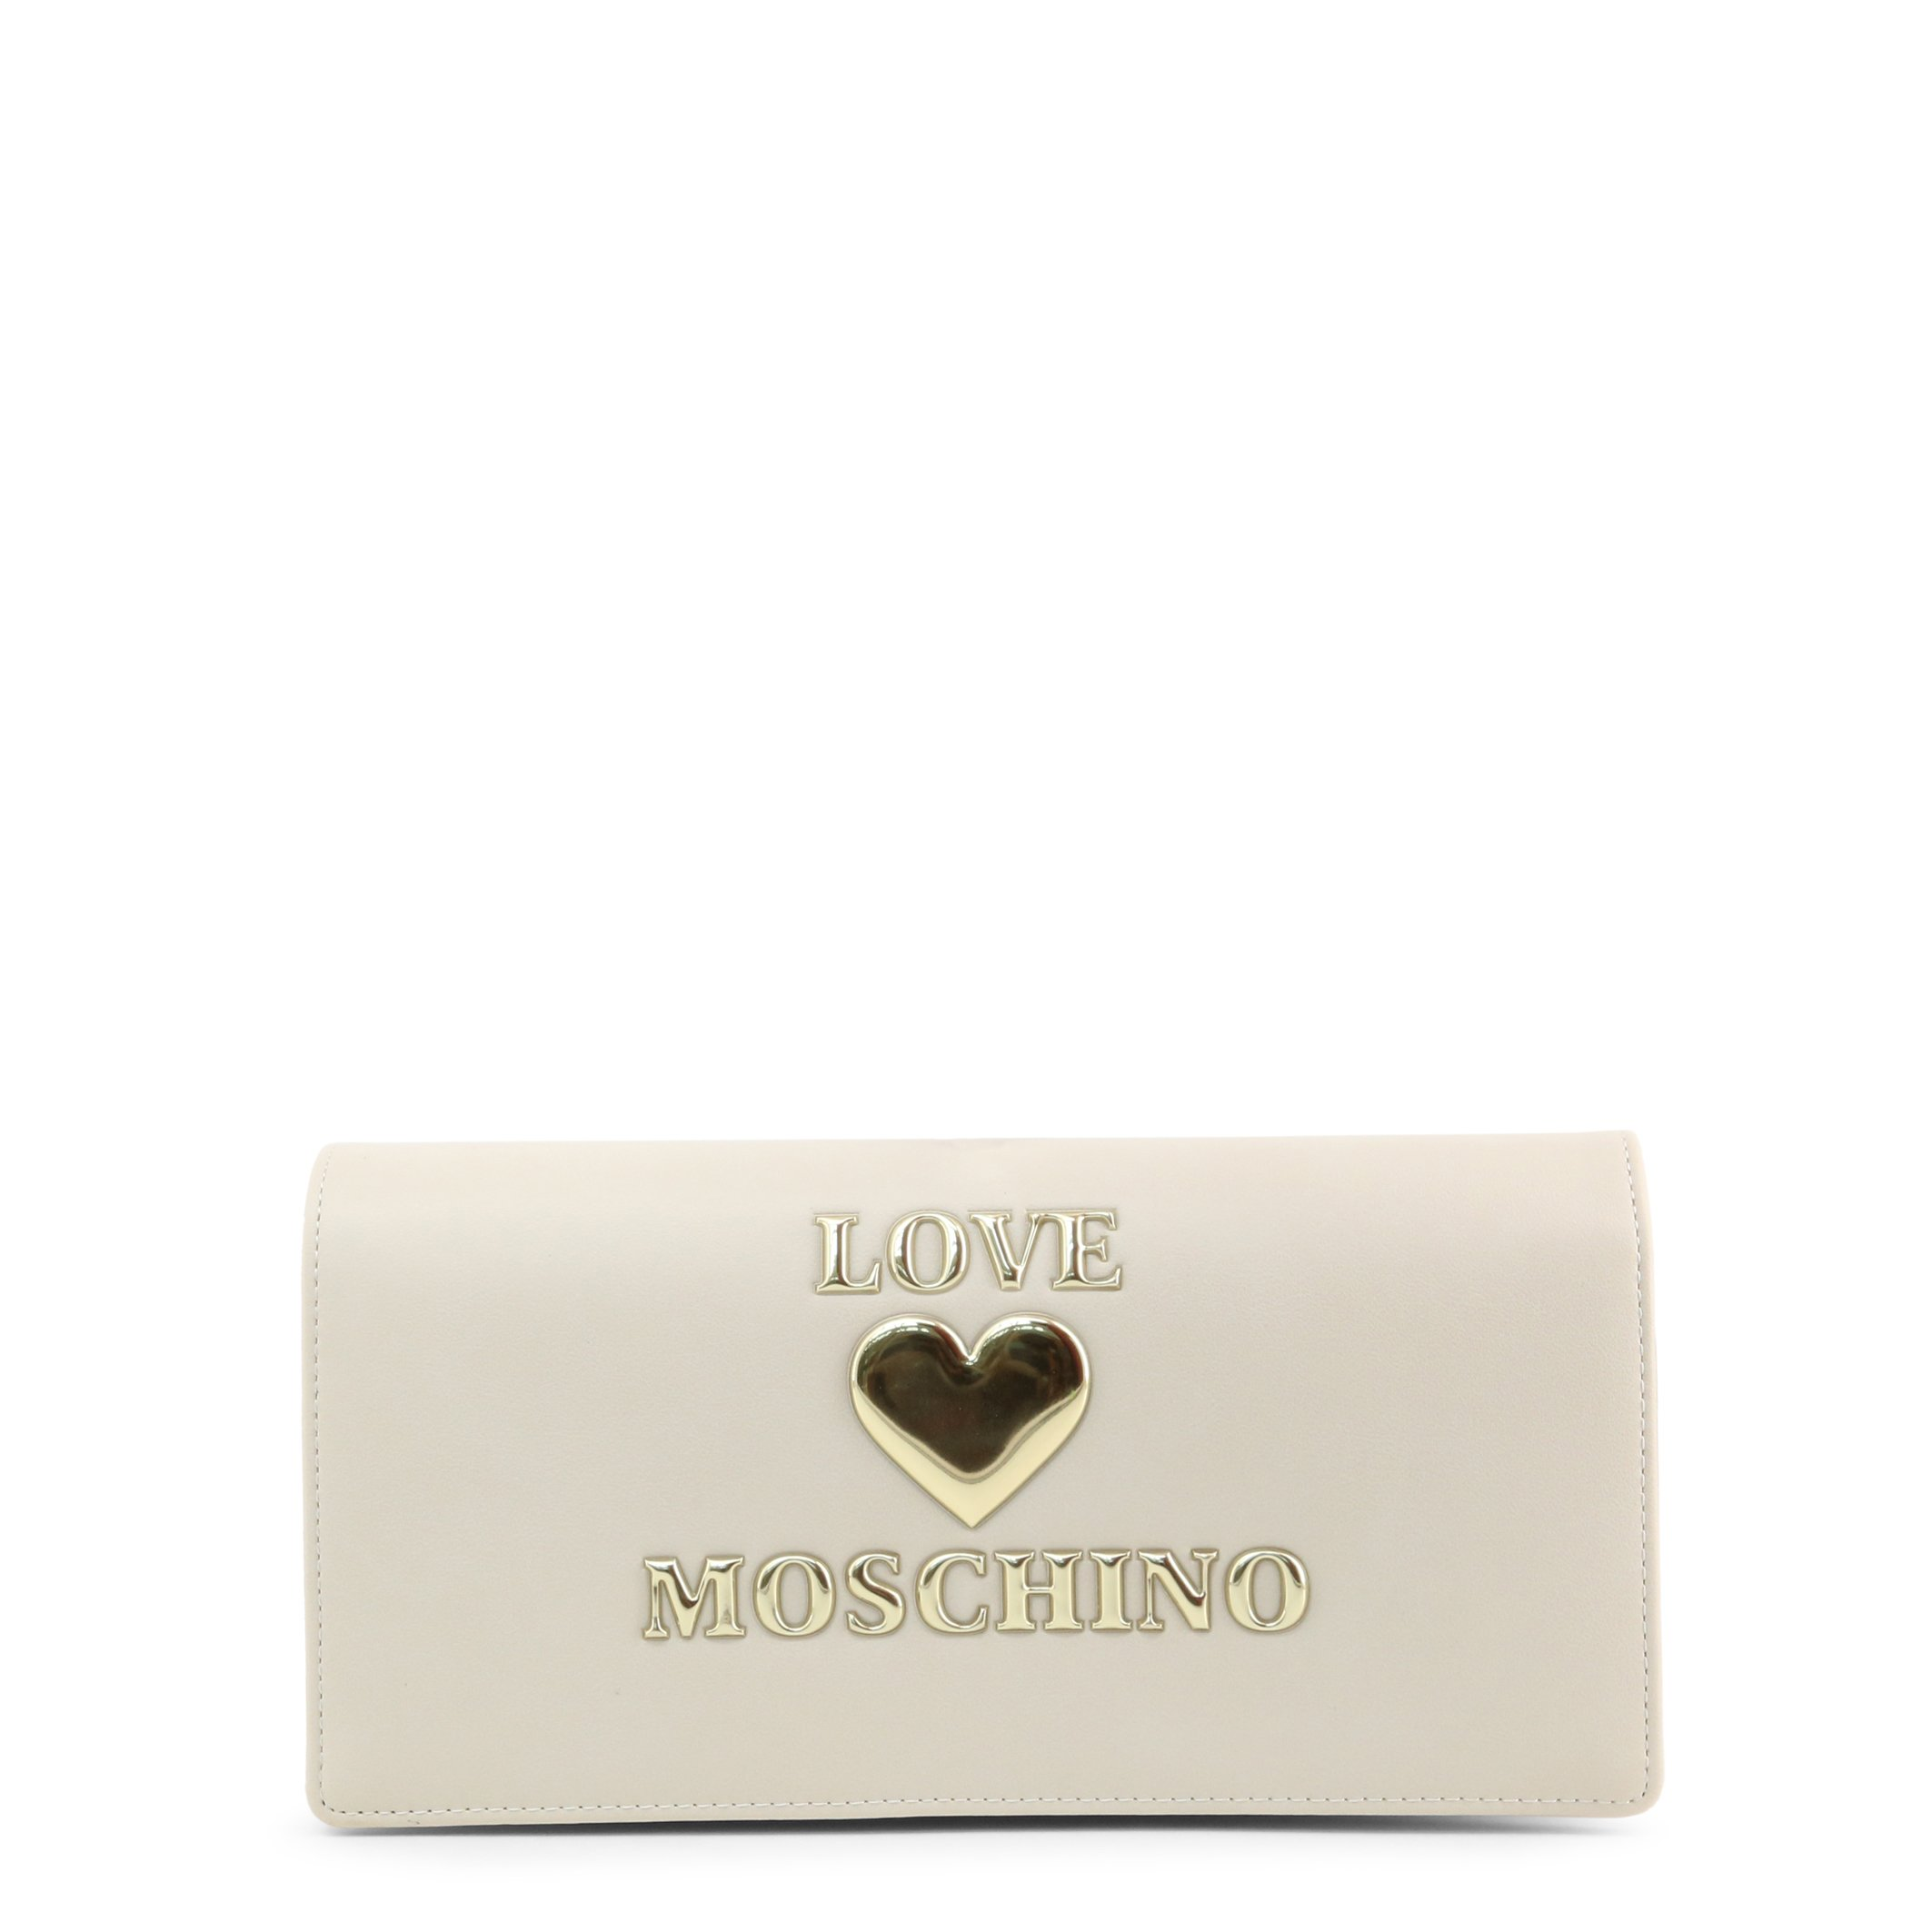 Love Moschino Women's Clutch Bag Various Colours JC5612PP1BLE - white NOSIZE